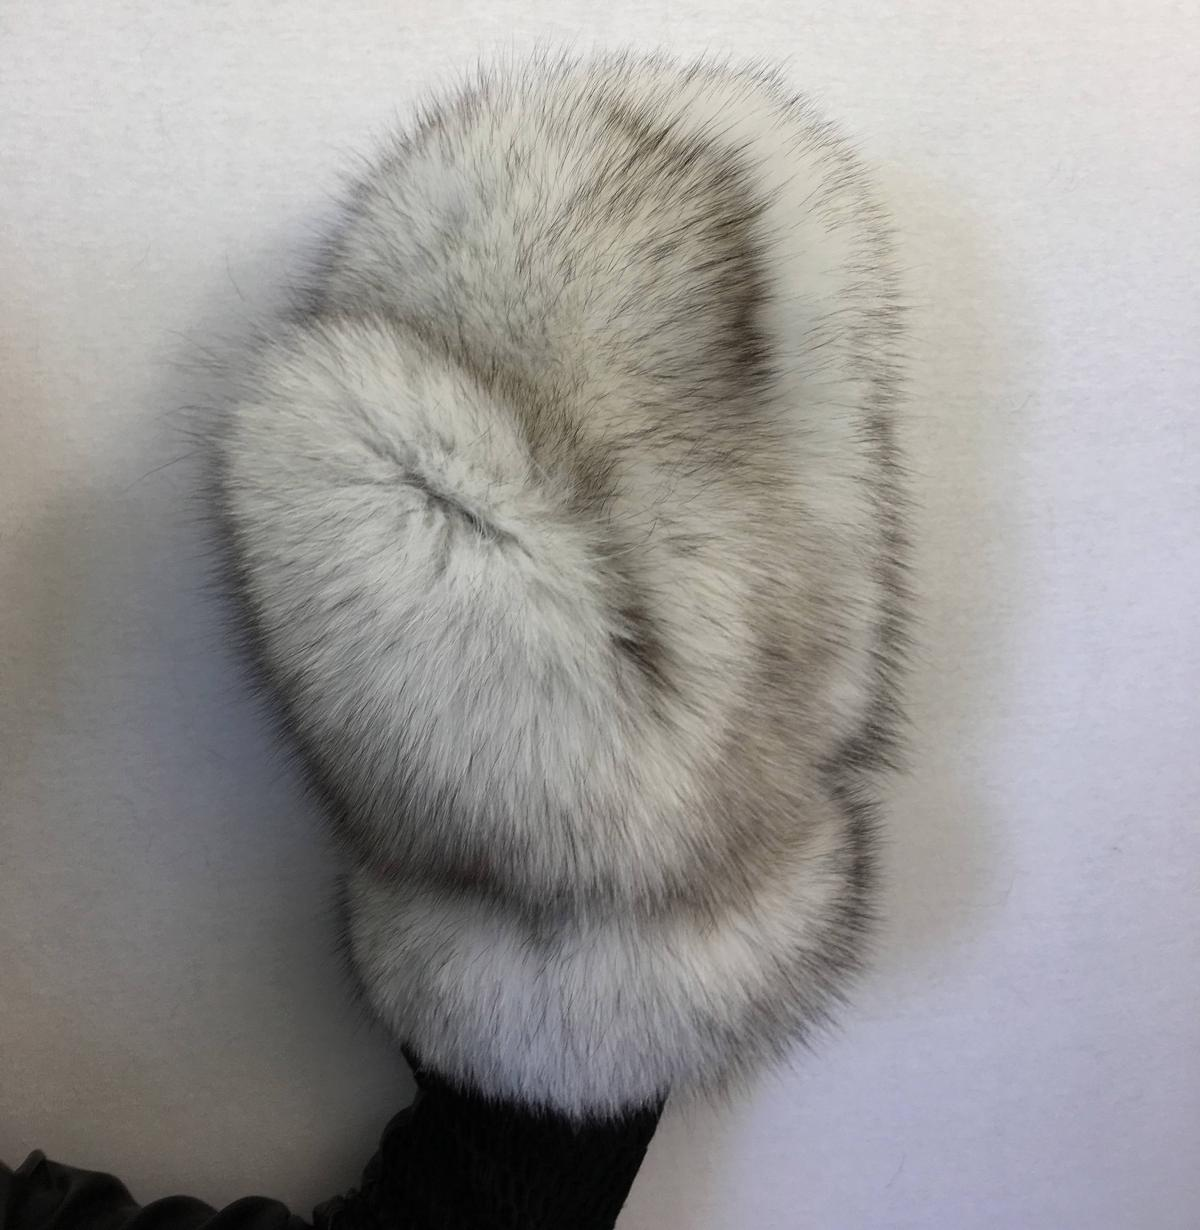 Giant Fur Mittens - Huge mittens